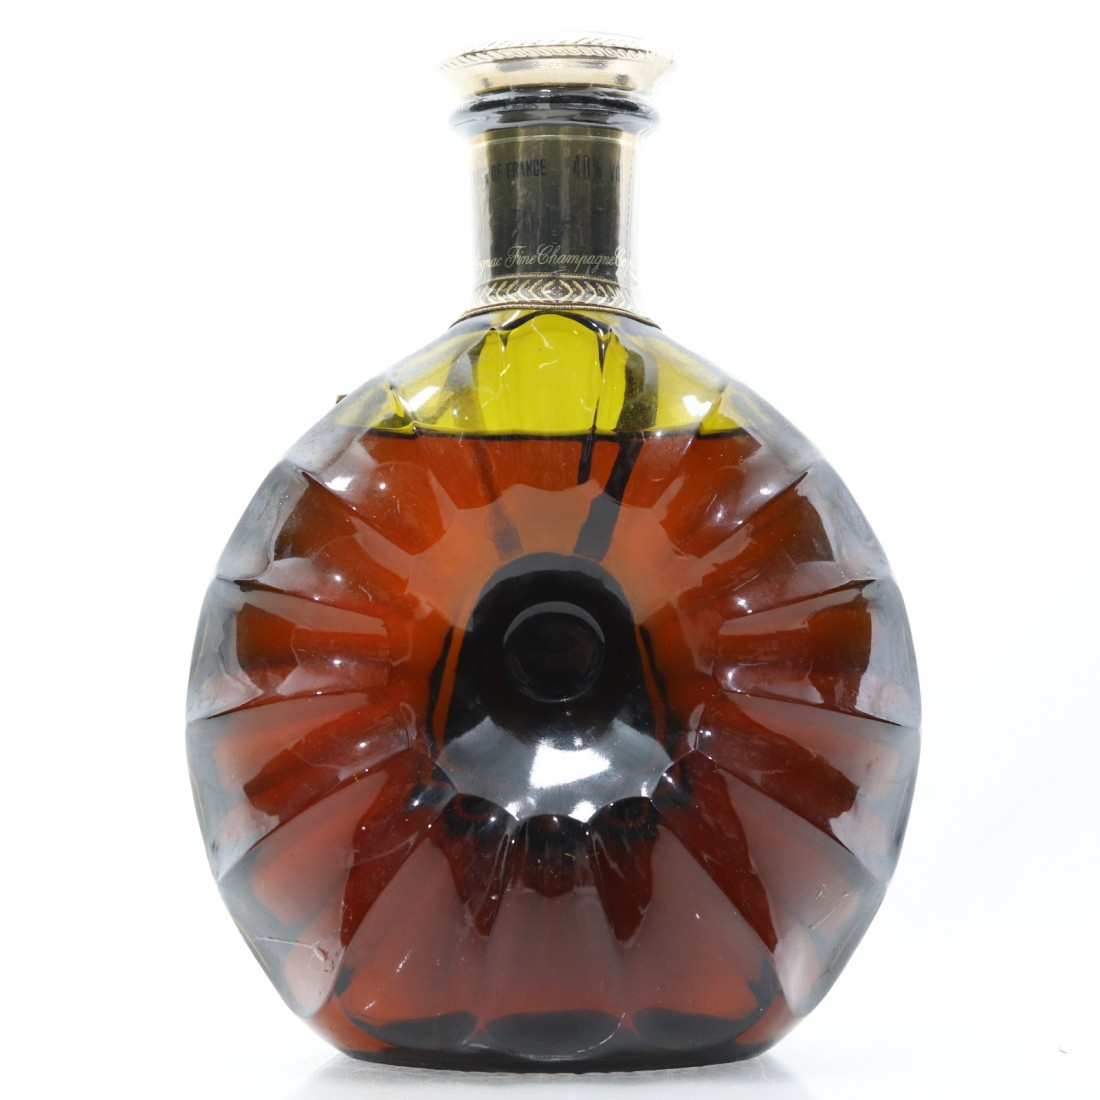 Remy Martin Extra Fine Champagne Cognac